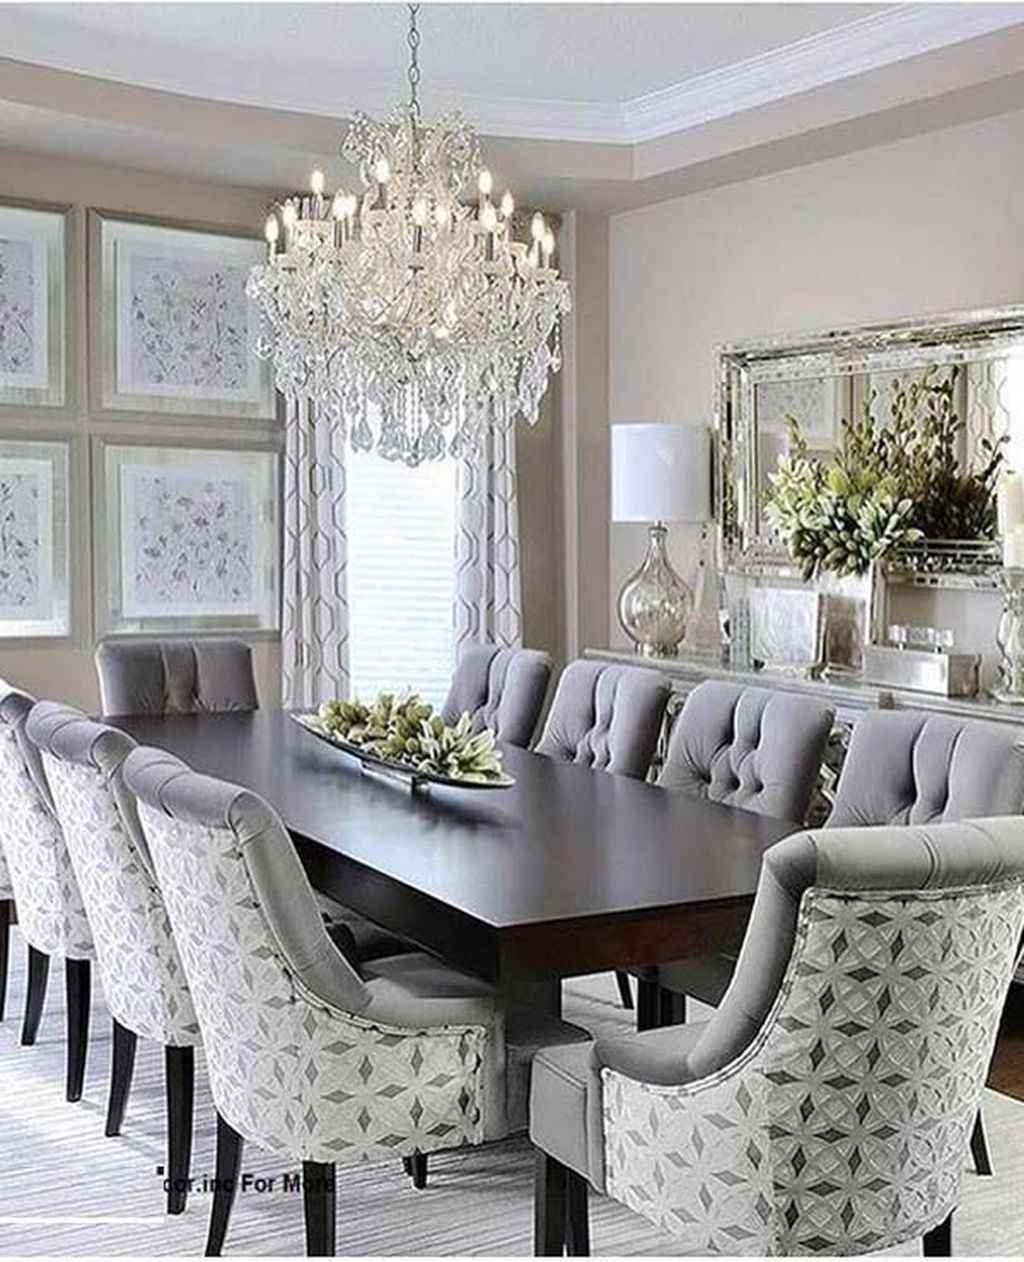 20 Adorable Dining Room Design Ideas For Comfortable Dinner With